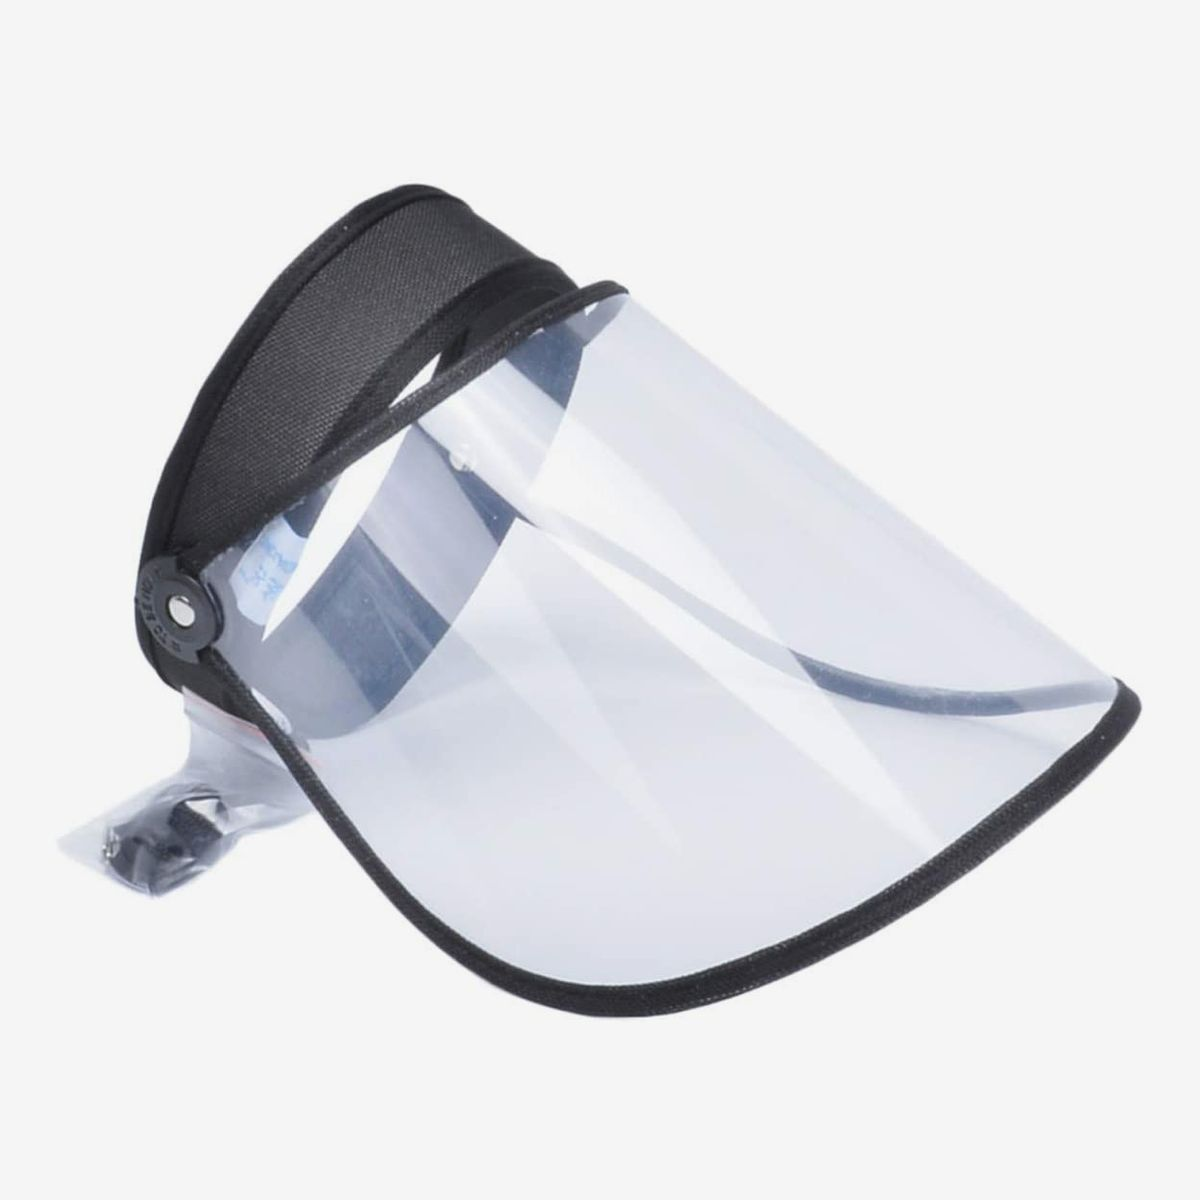 2X SAFETY FACE SHIELD Full Face Shield Cover Face Protector USA Seller